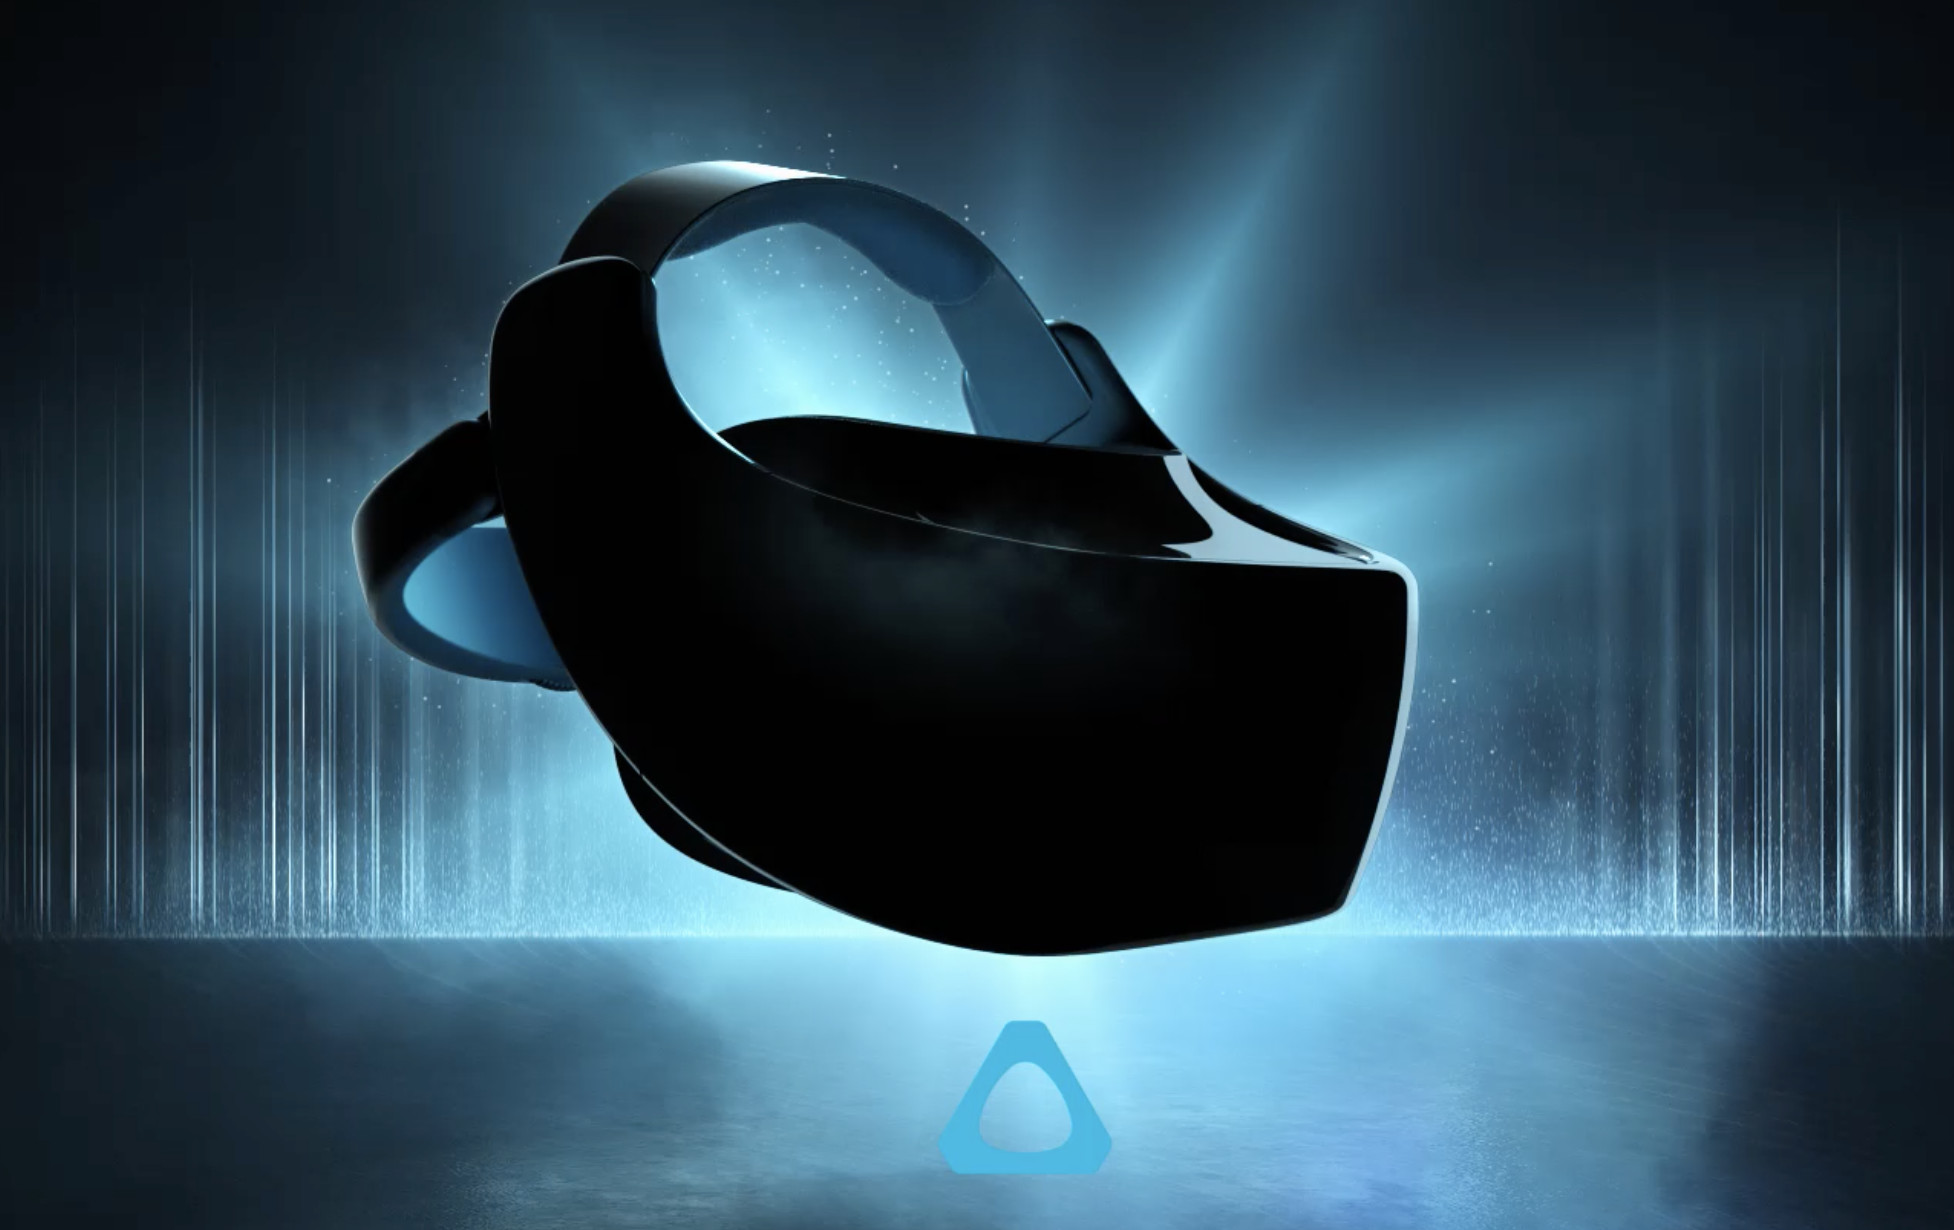 HTC unveils Vive Focus, Vive Wave VR in Beijing